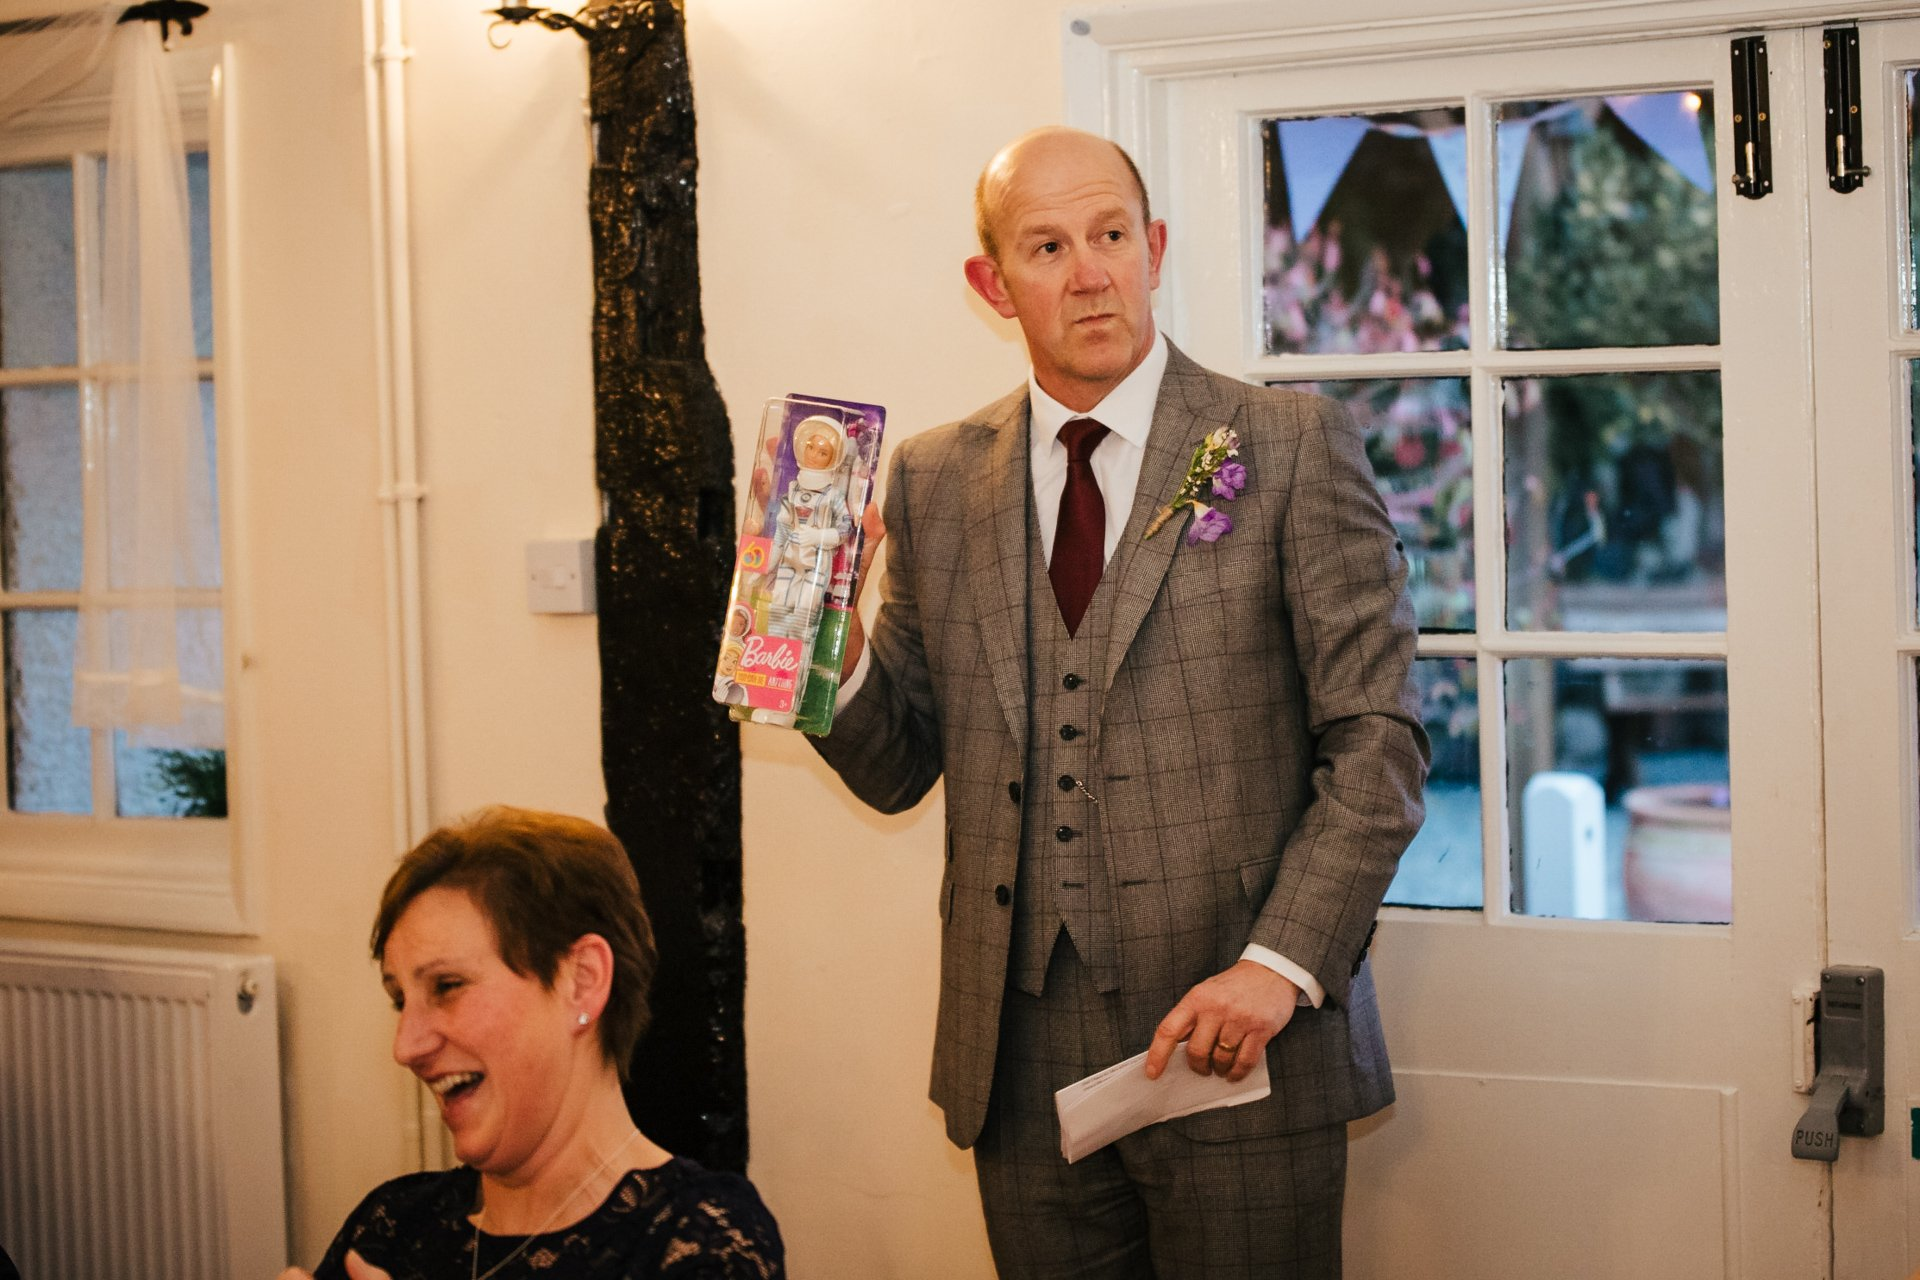 Brides brother holding up barbie doll during wedding speeches